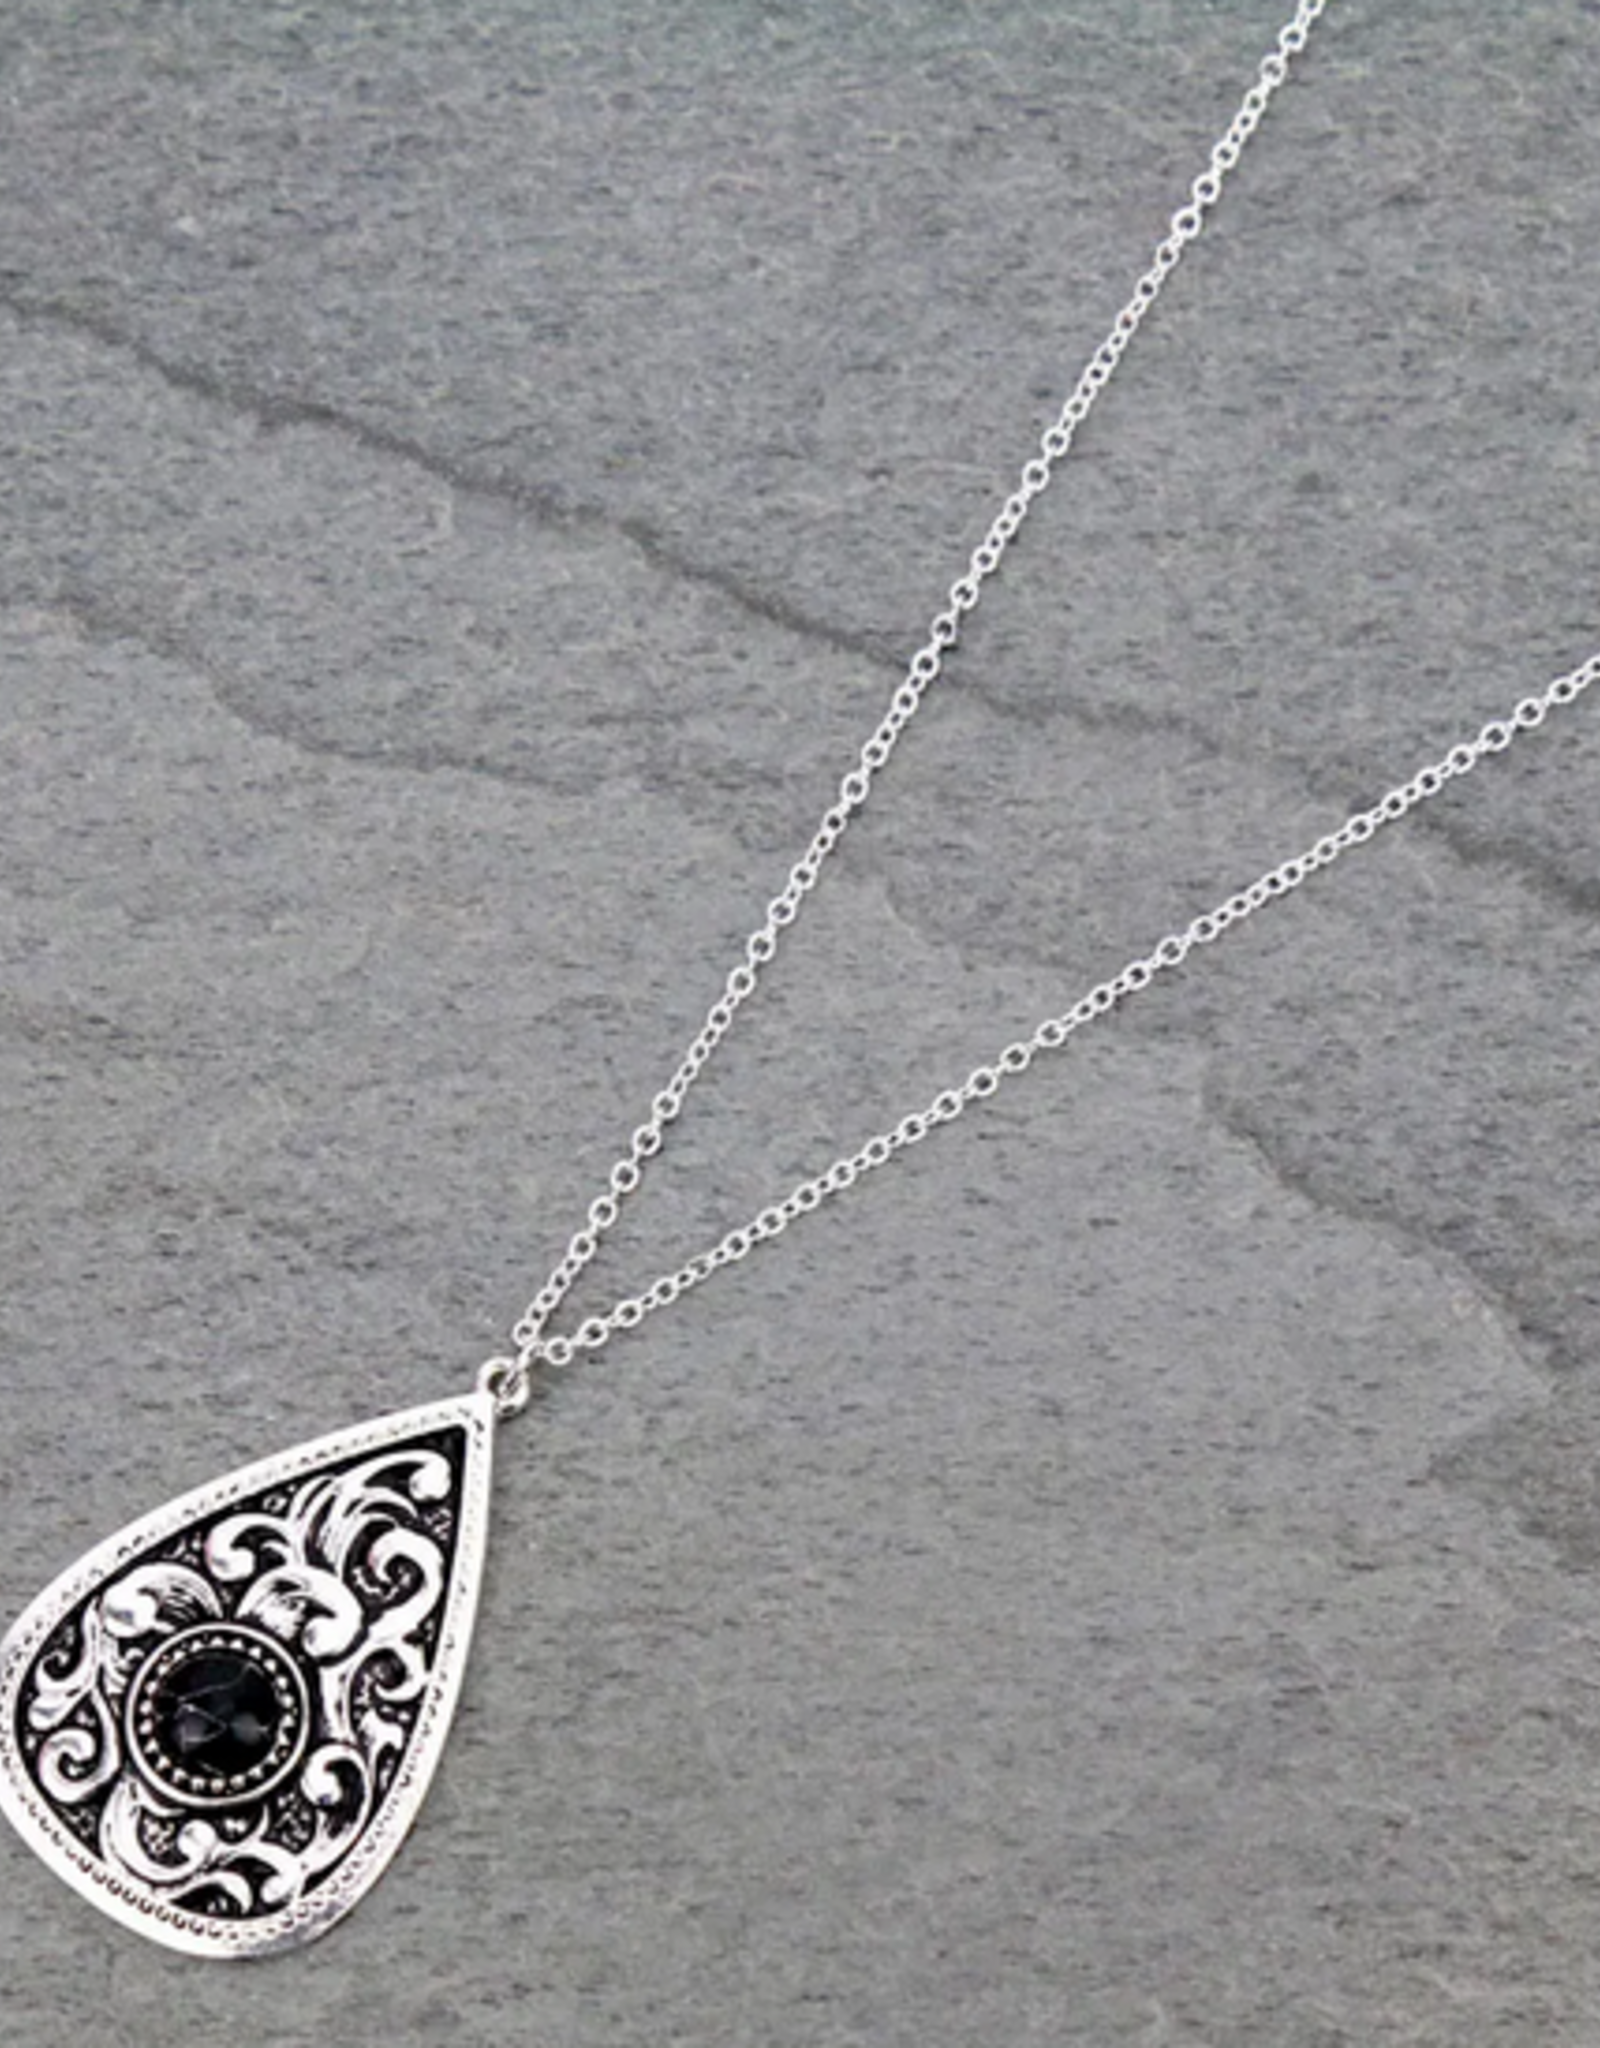 NECKLACE PATTERNED CASTING WITH BLACK STONE